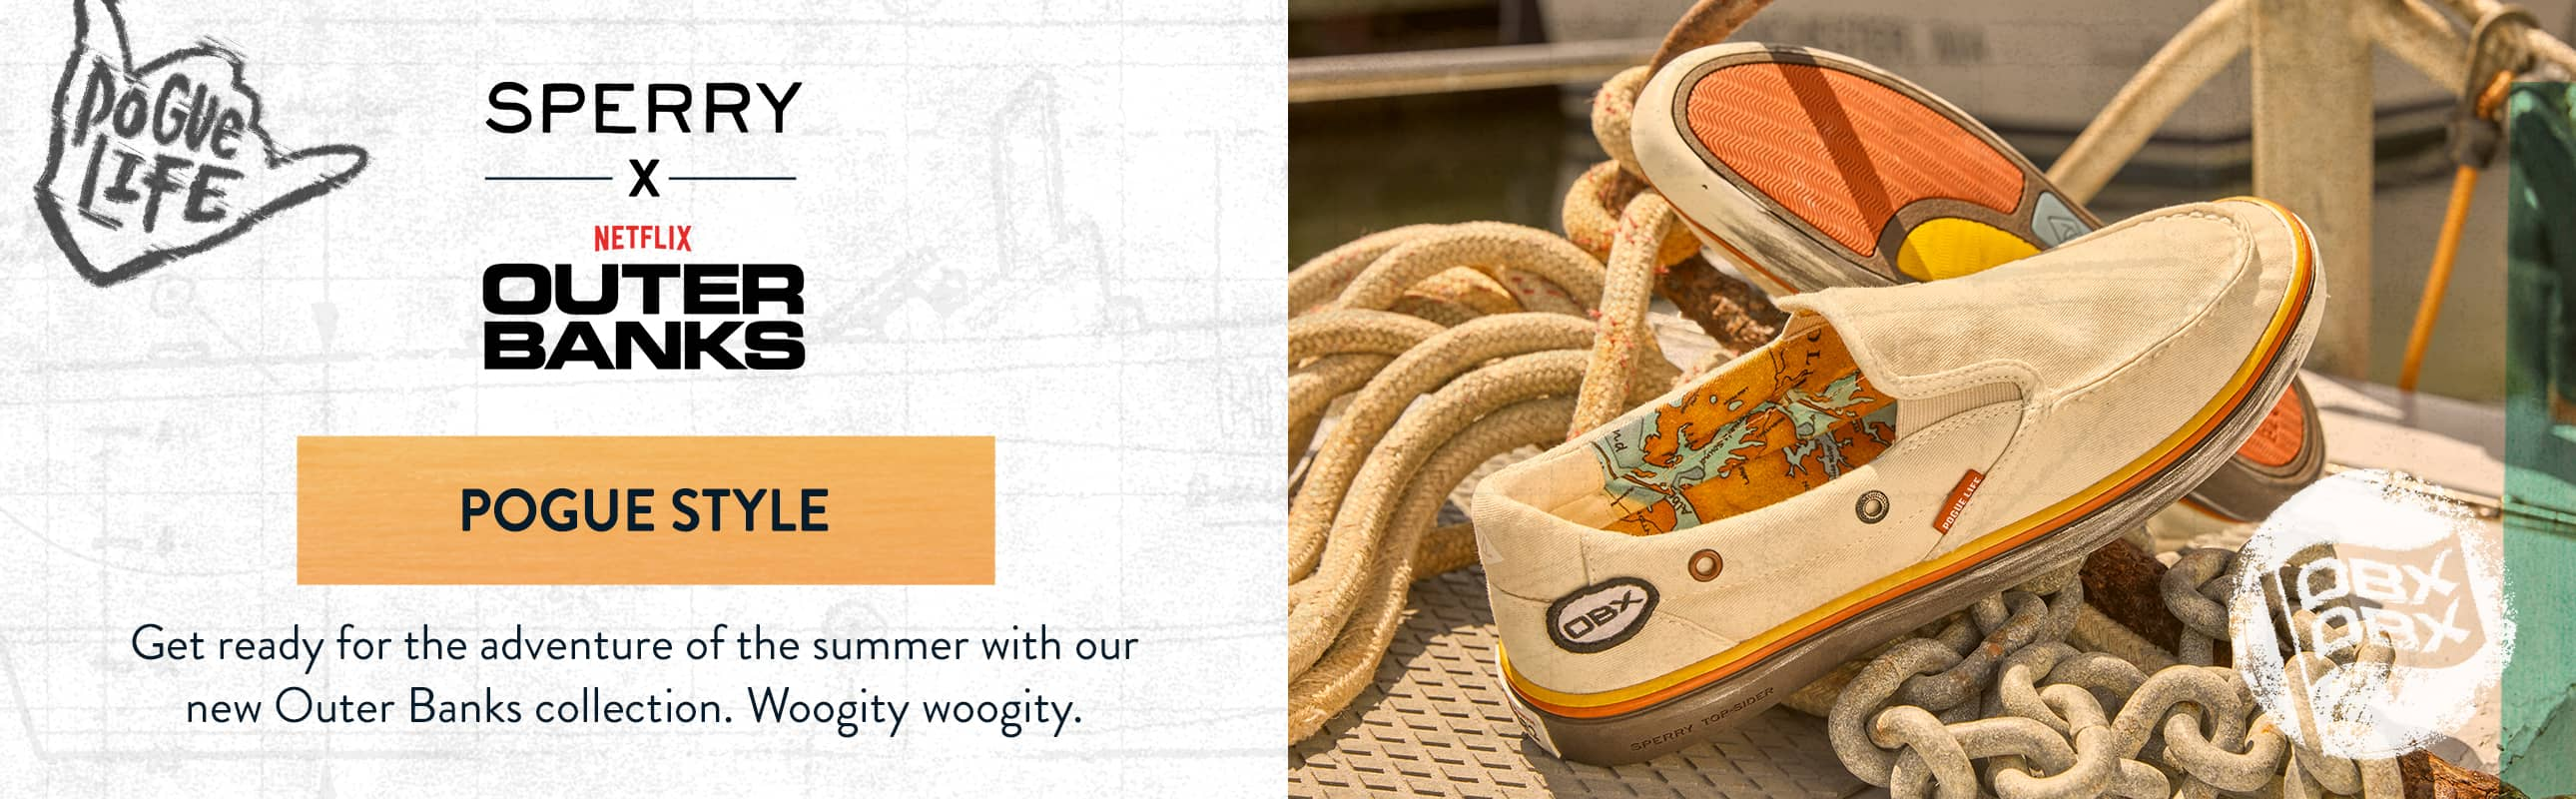 Sperry Outer Banks Shoes